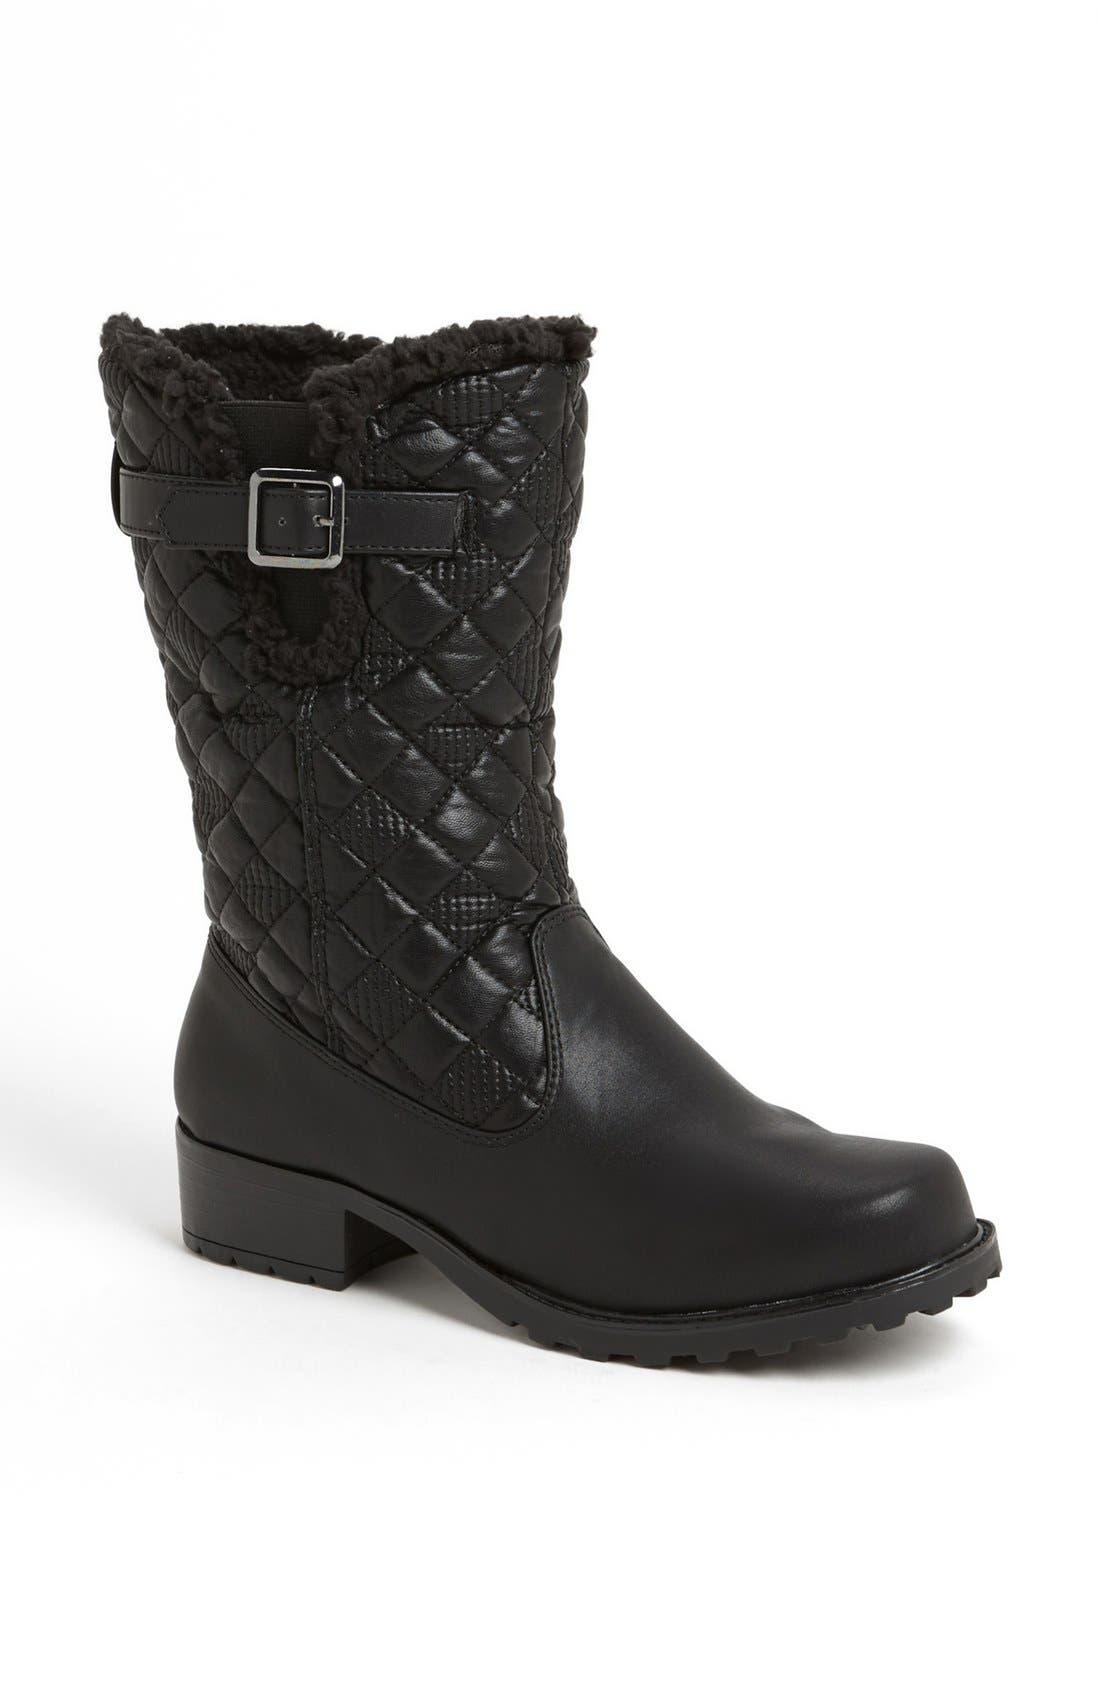 Alternate Image 1 Selected - Trotters 'Blizzard III' Boot